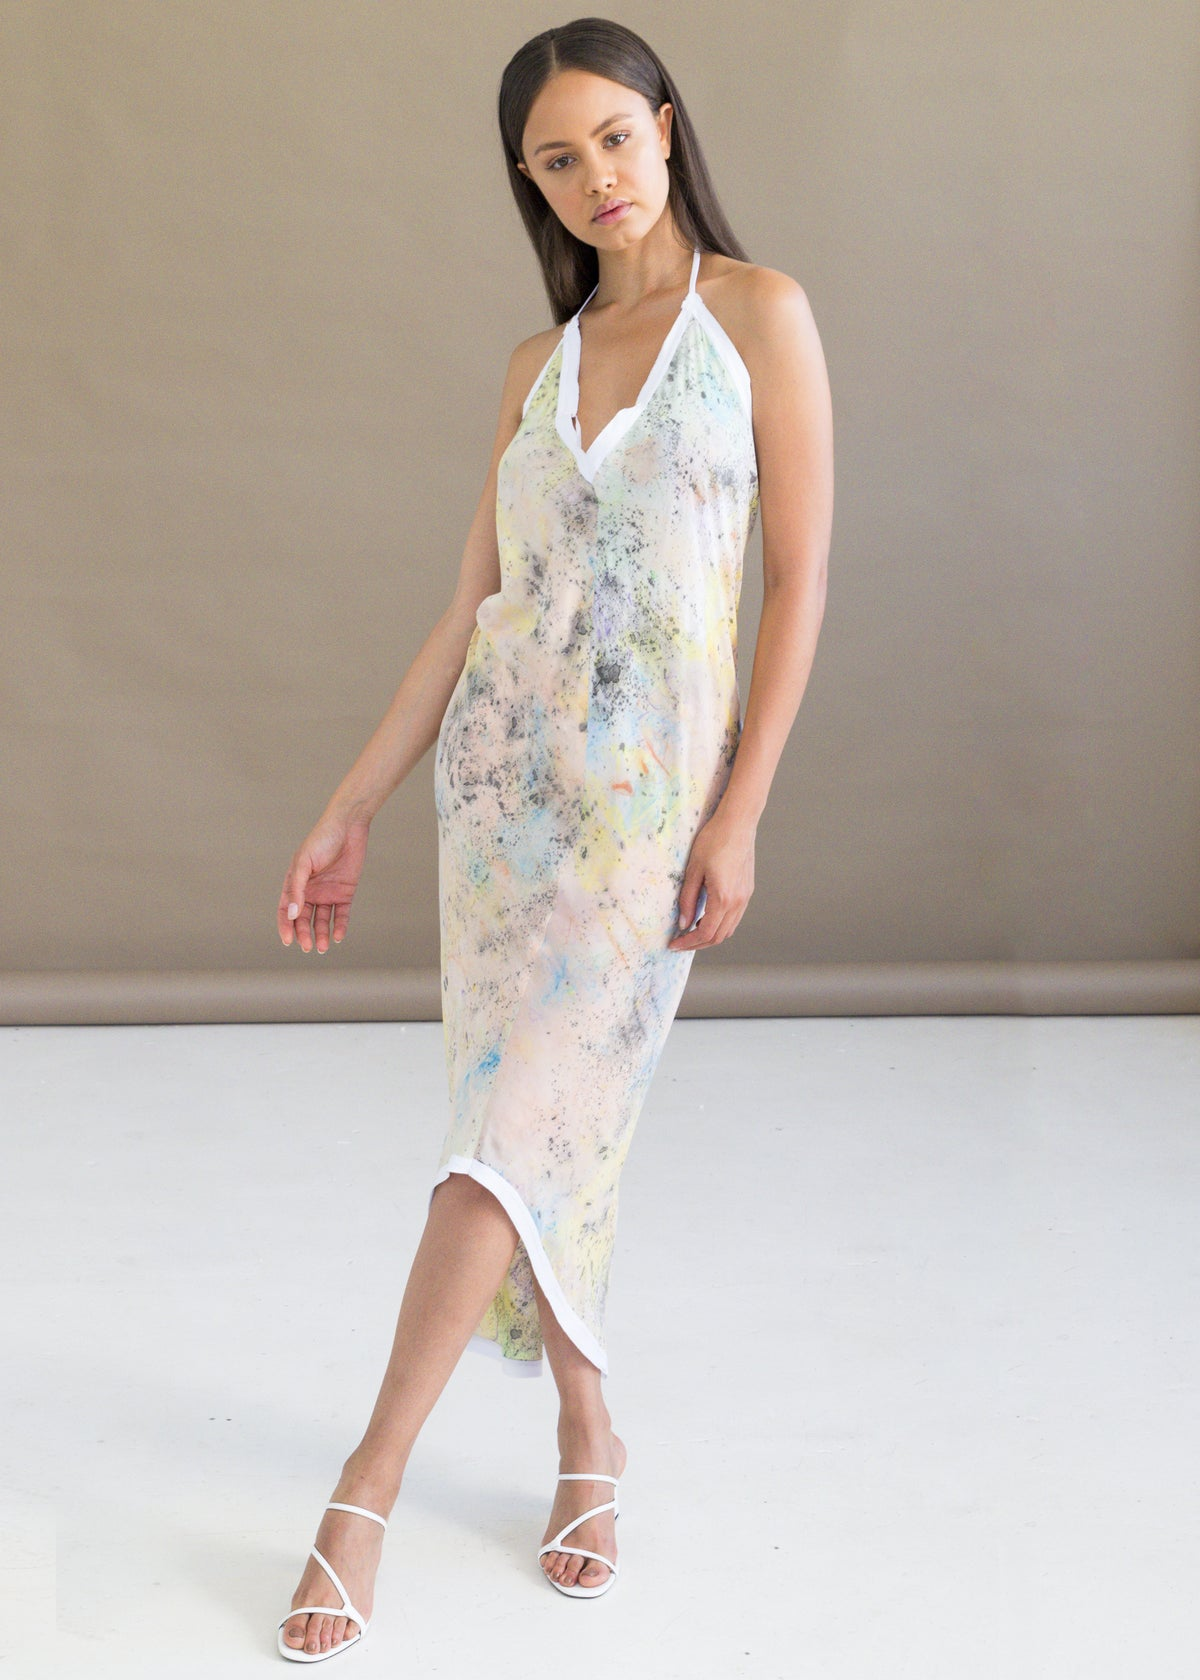 Shop the hand-dyed halter dress featuring a pastel print design by W35T.